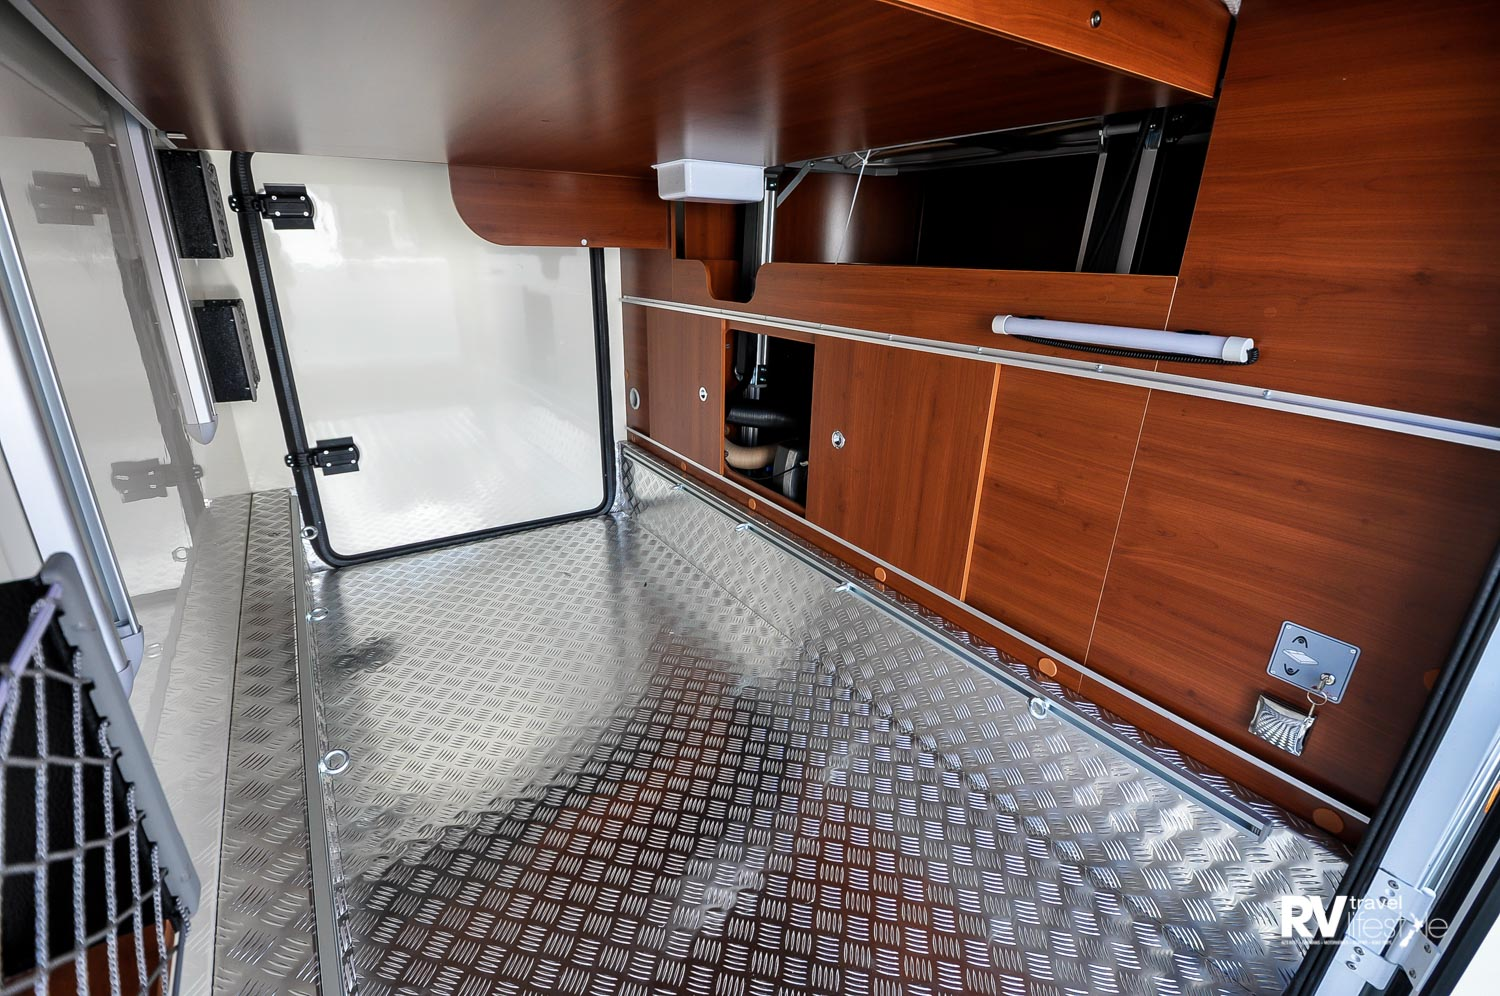 Large rear boot accessible from both sides (the bed lifts up to access storage if required). The floor is level with the door entry, maximum weight 120kg, door height 1100mm, inside garage height is adjustable up to 1470mm